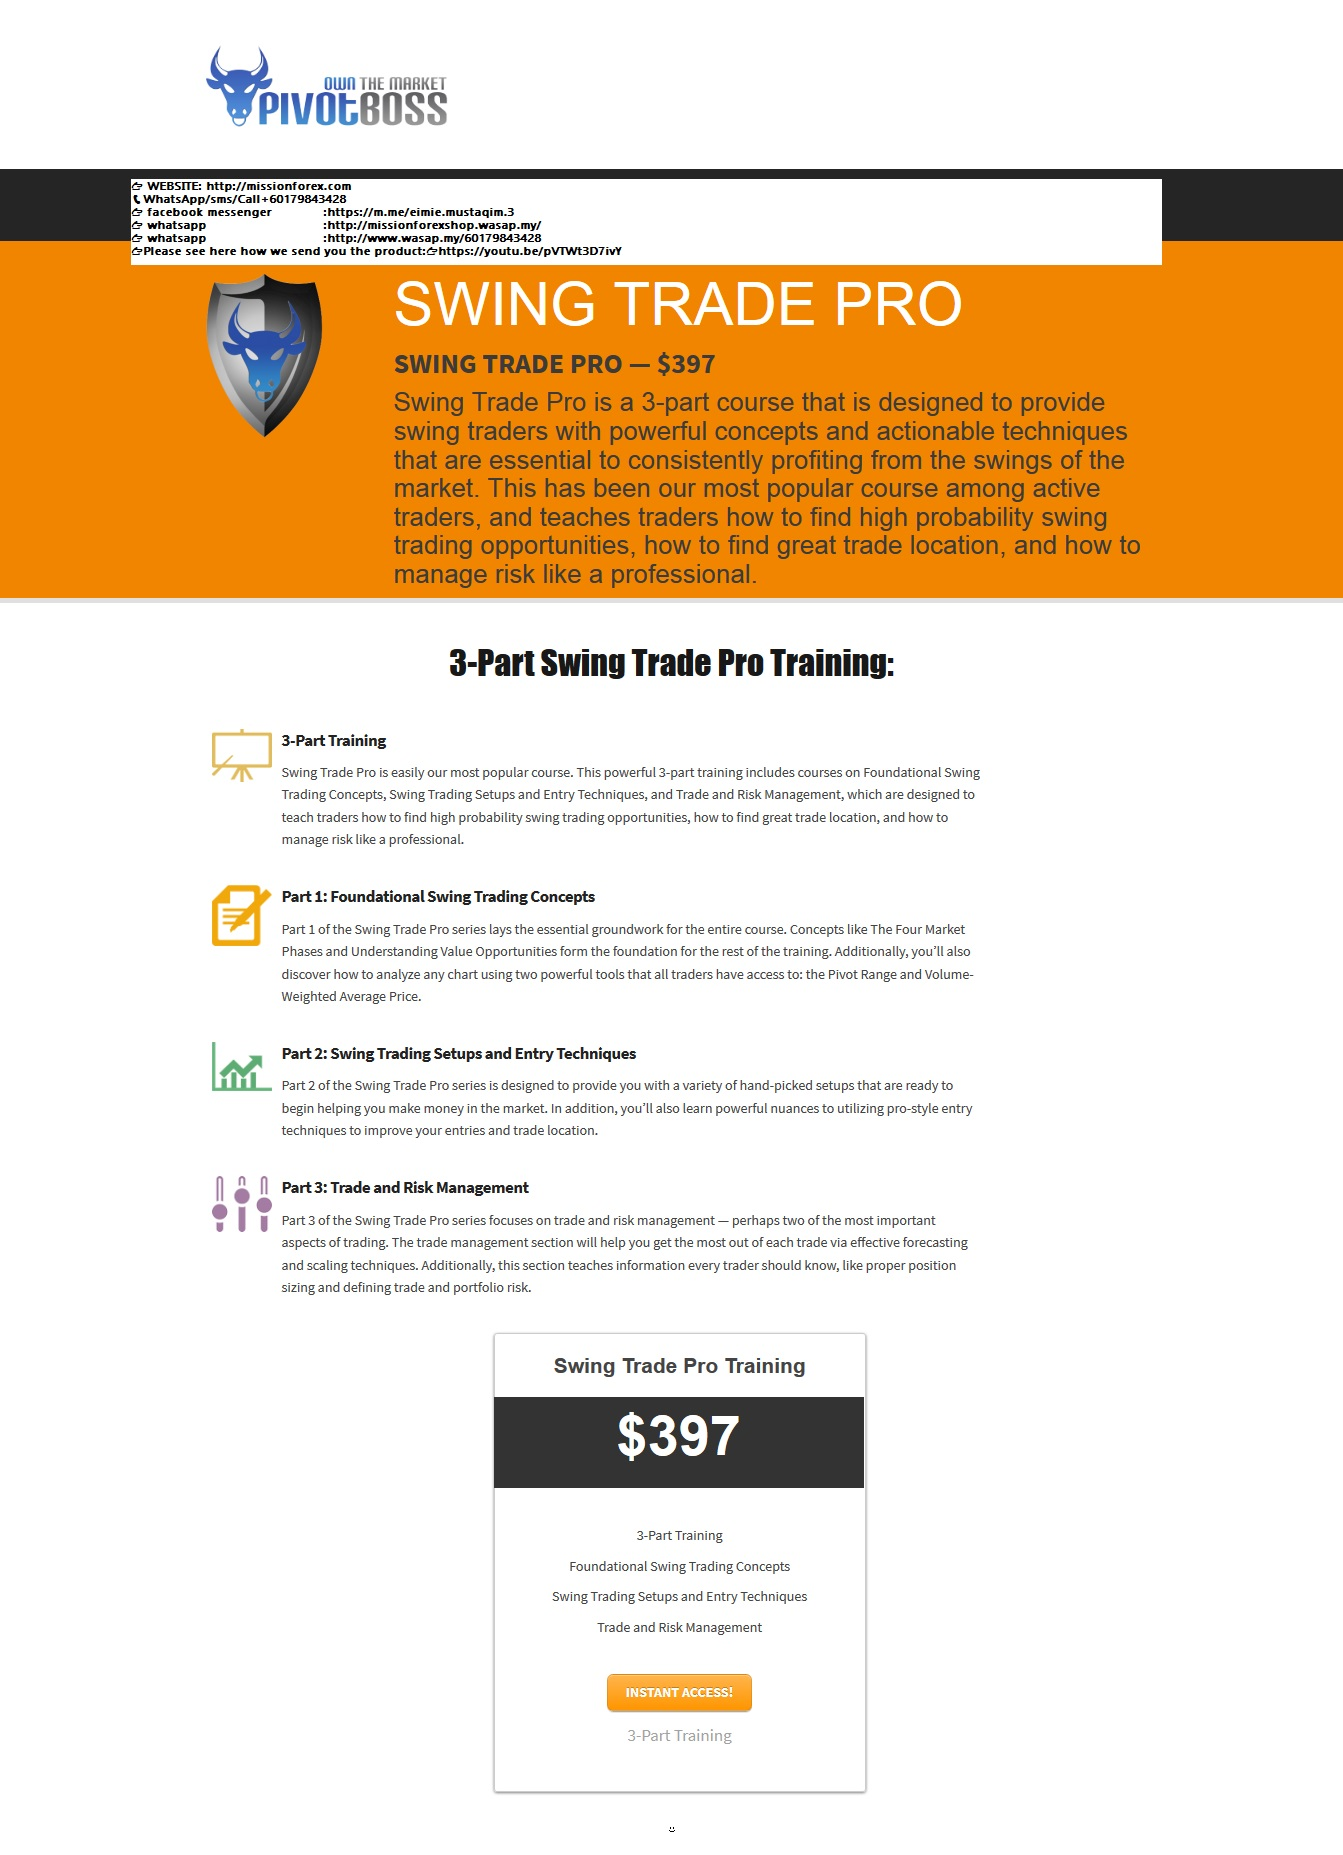 SWING TRADE PRO Swing Profits — PivotBoss Own the Market